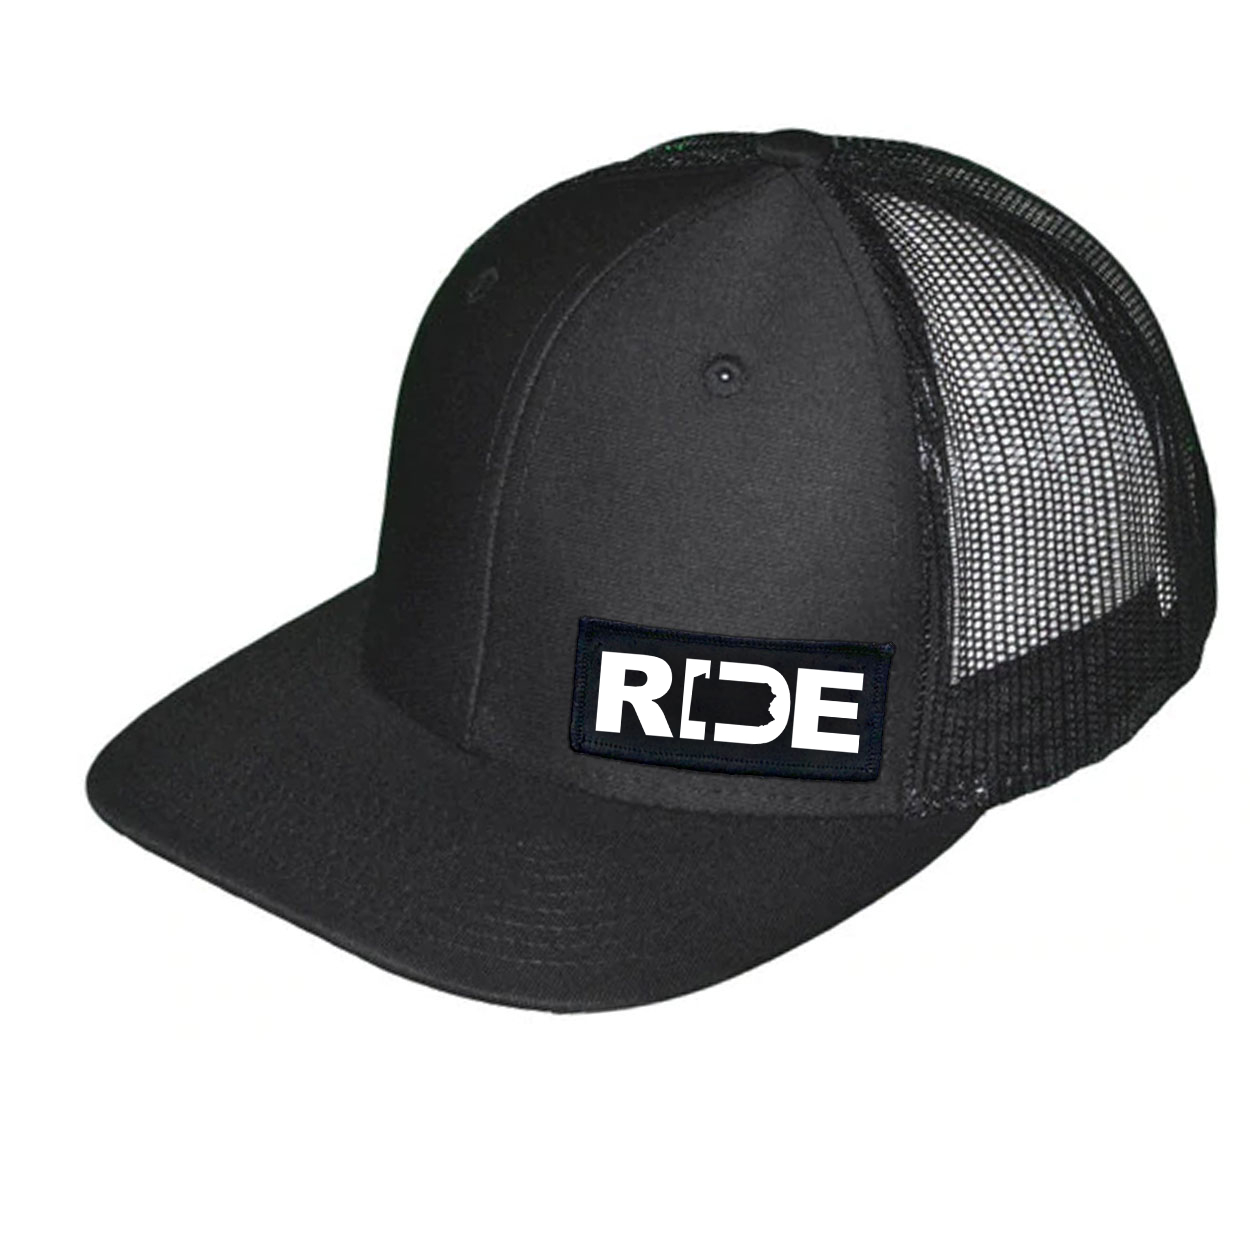 Ride Pennsylvania Night Out Woven Patch Snapback Trucker Hat Black (White Logo)